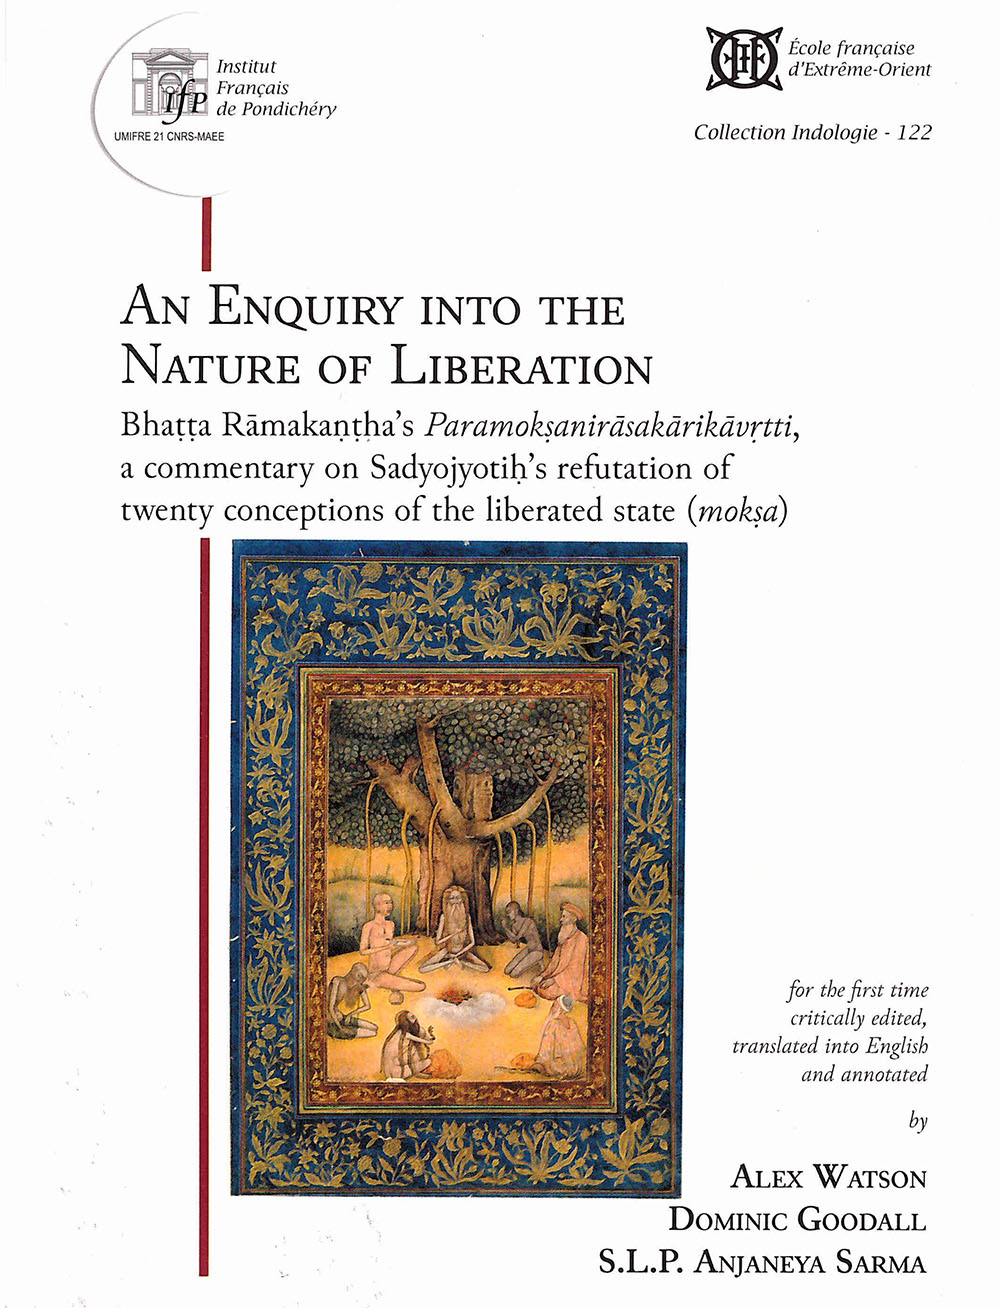 An Enquiry into the Nature of Liberation